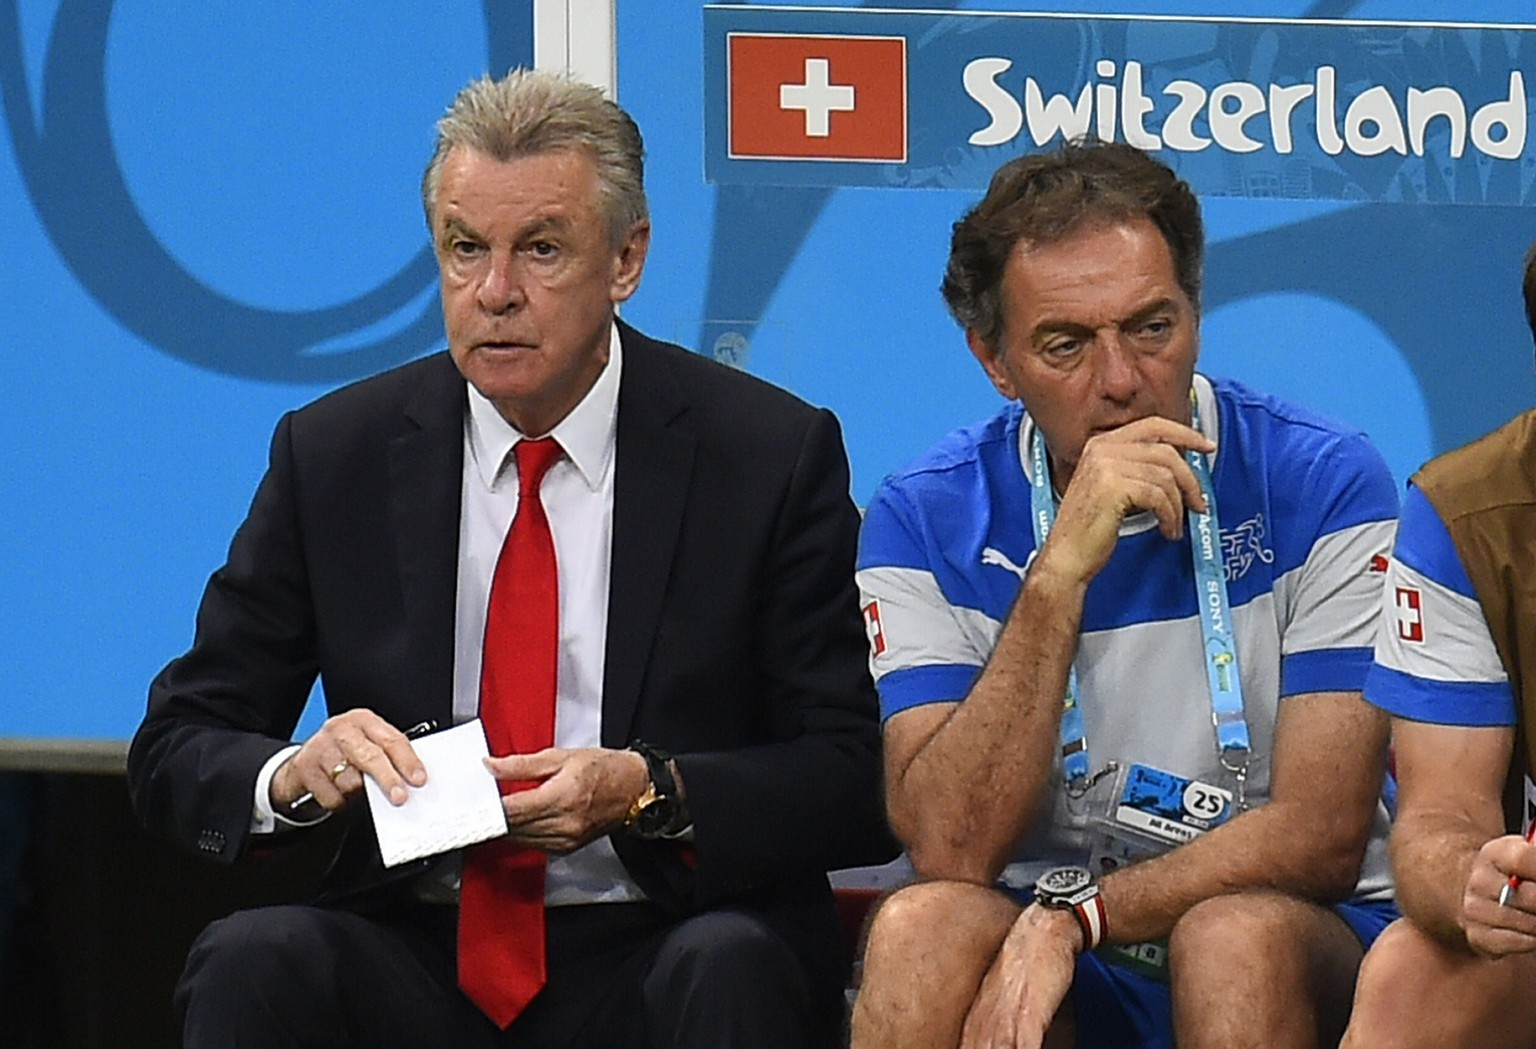 Switzerland's German coach Ottmar Hitzfeld (L) watches a Group E football match between Switzerland and France at the Fonte Nova Arena in Salvador during the 2014 FIFA World Cup on June 20, 2014.       AFP PHOTO / FABRICE COFFRINI